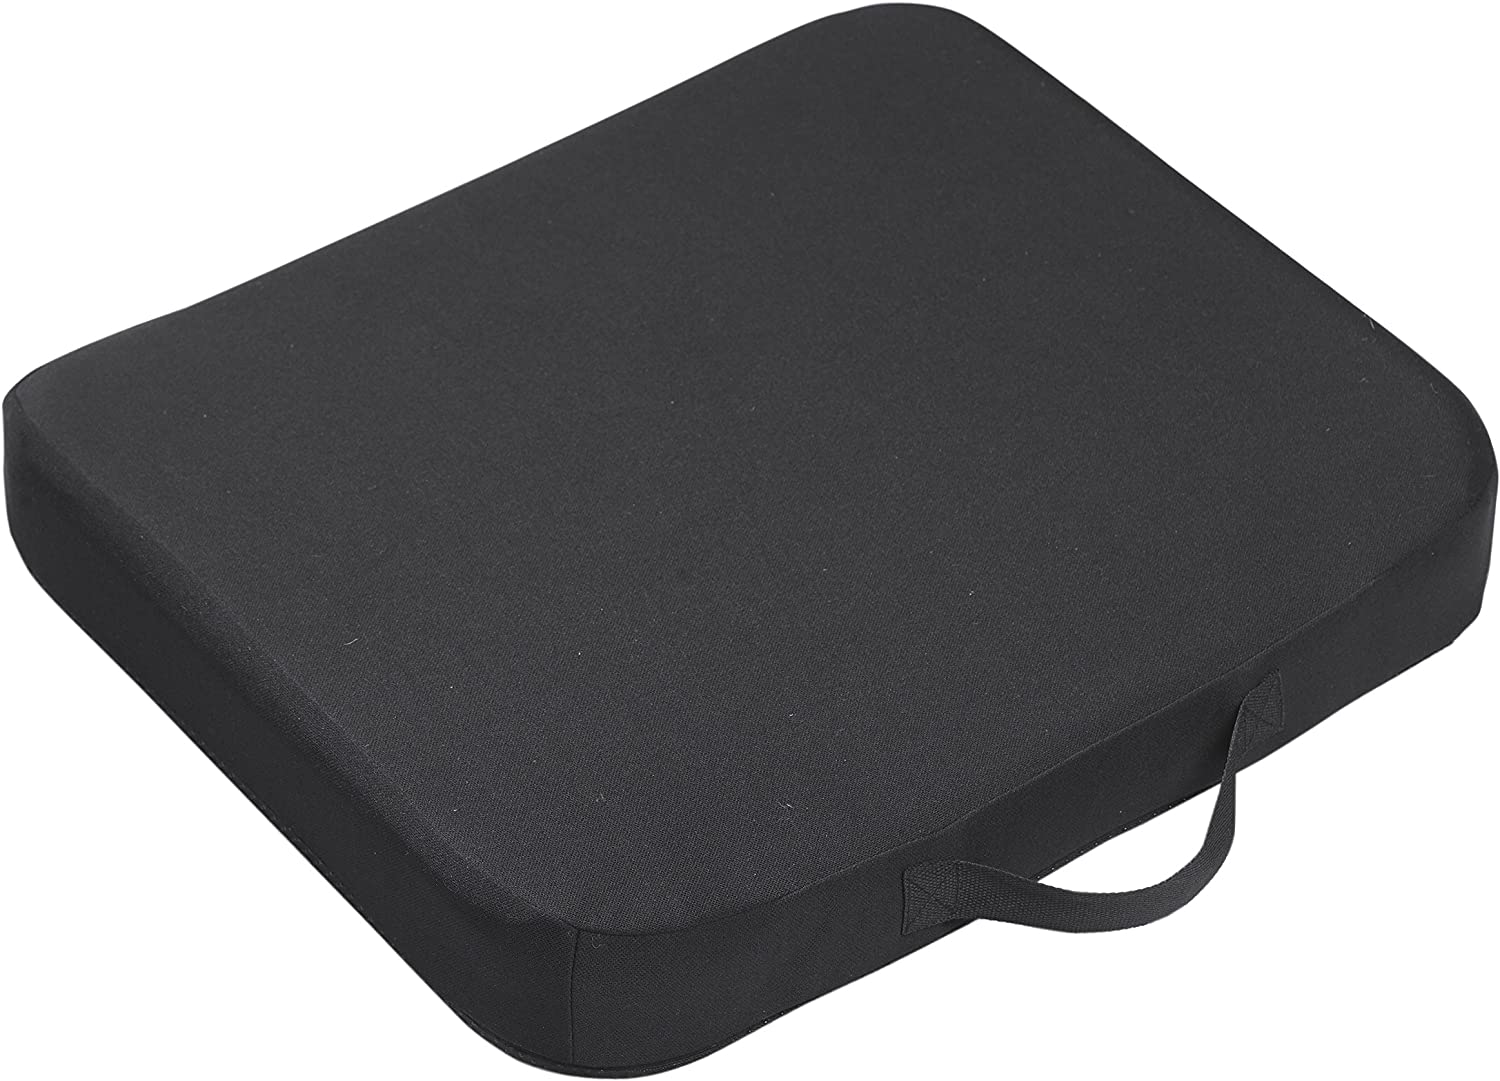 Drive Medical Comfort Touch Cooling Sensation Seat Cushion, Black